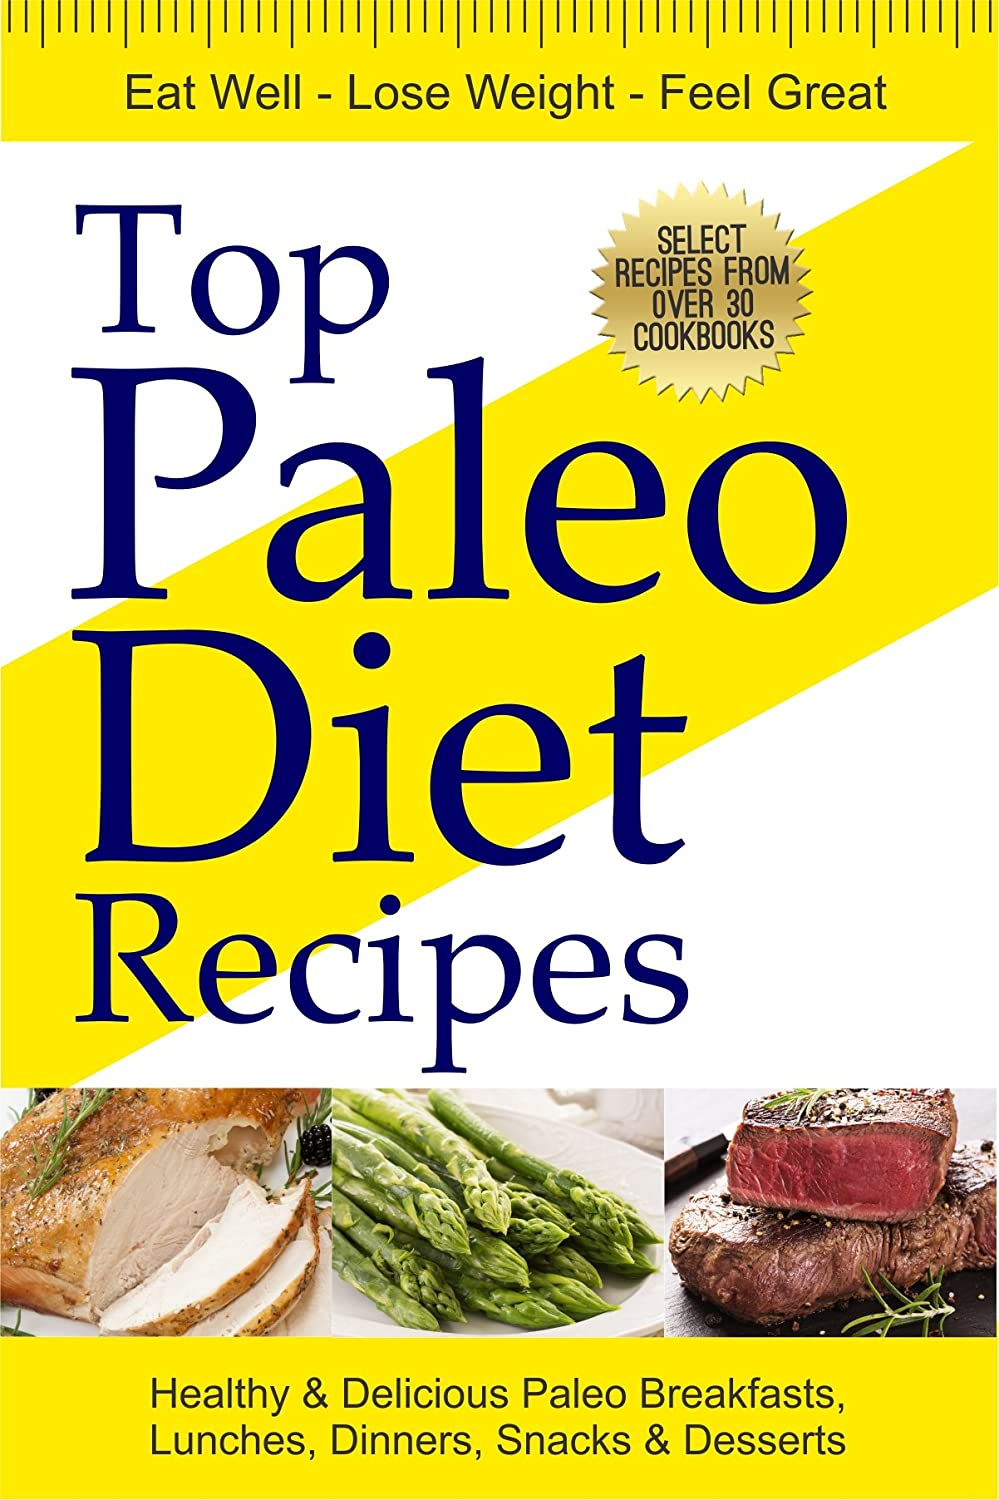 Top-Paleo-Diet-Recipes-Kindle-COVER_opt-for-PR